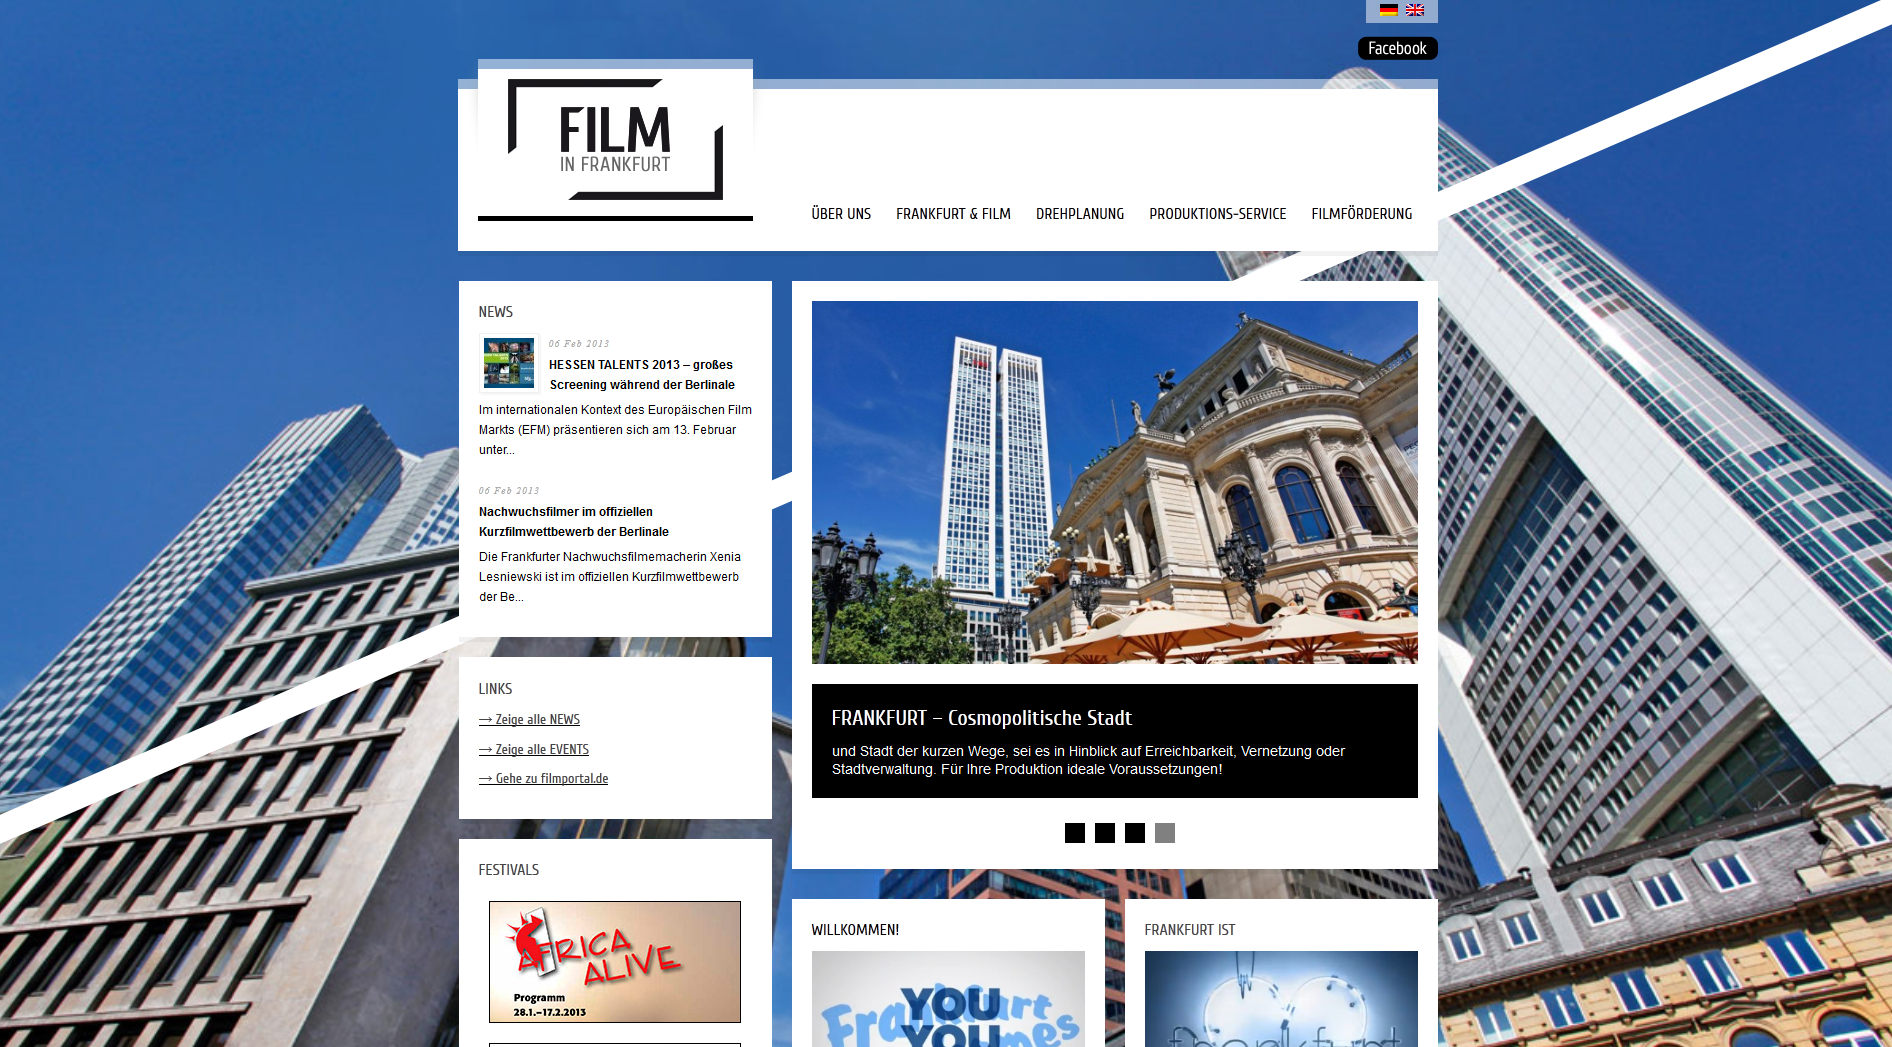 Film in Frankfurt - Screenshot